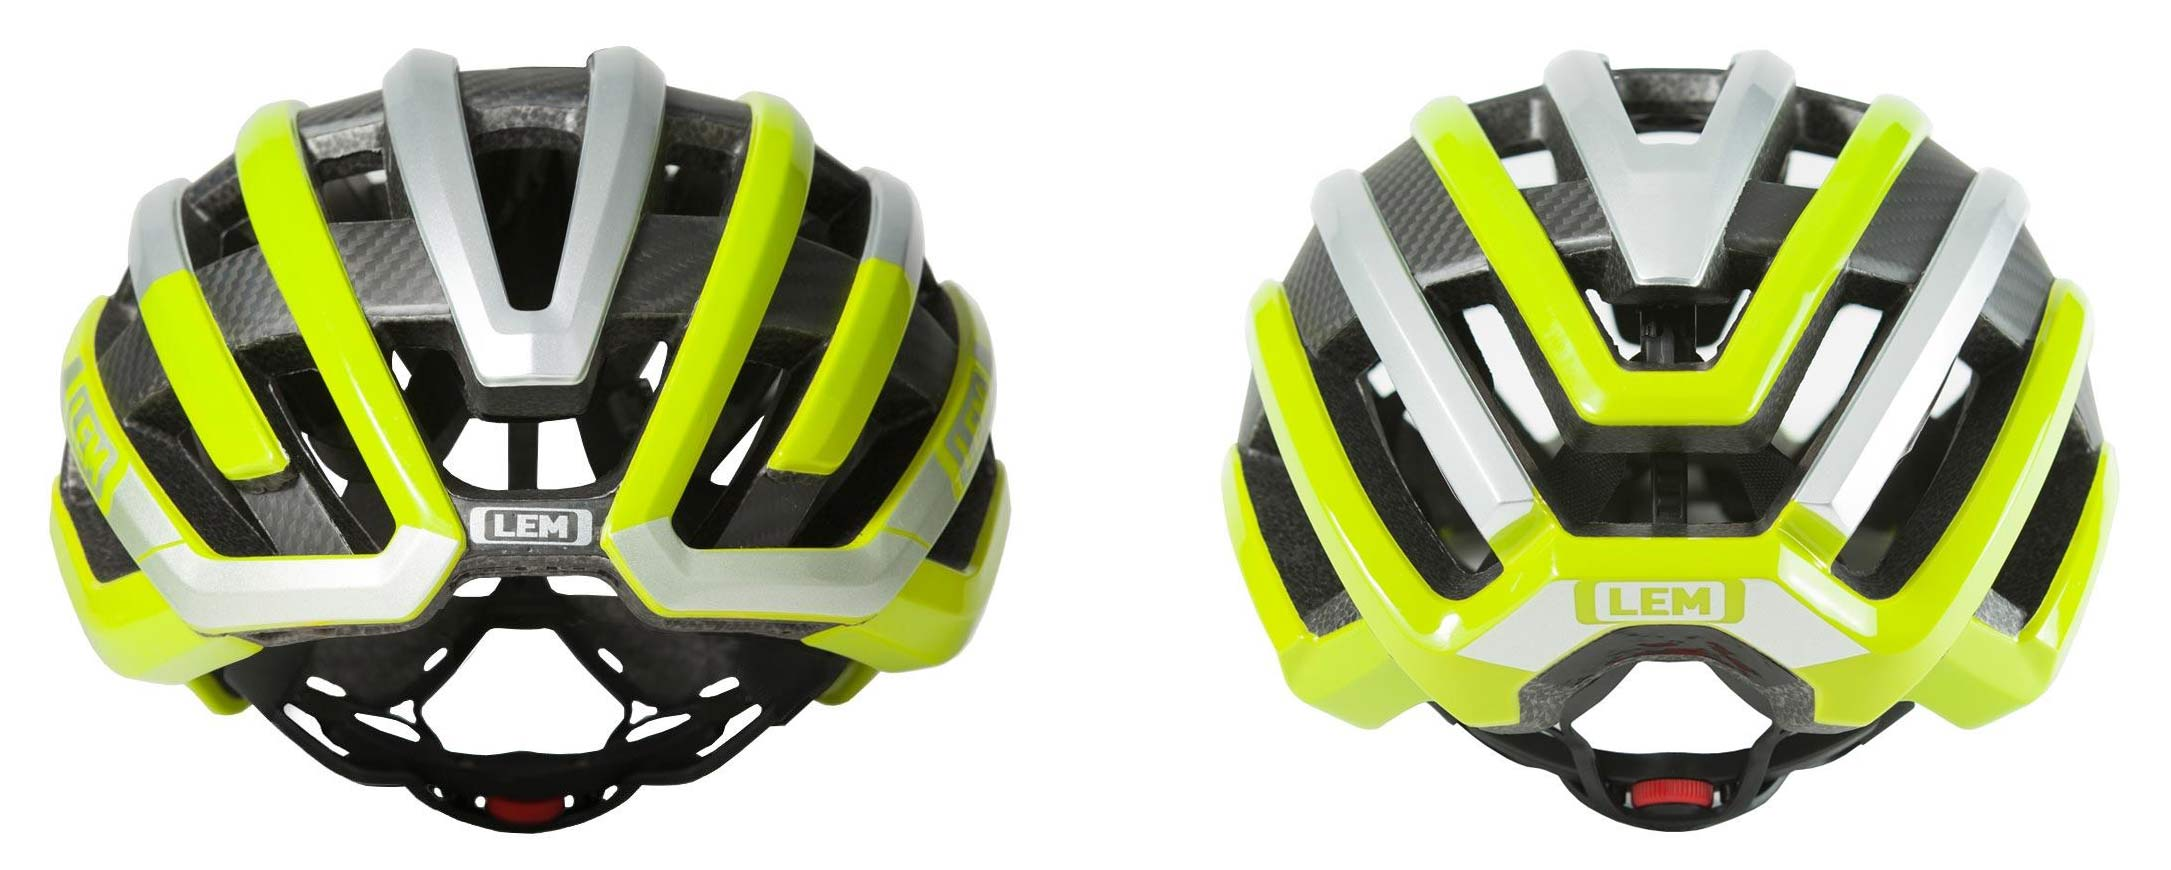 LEM motiv air uses a carbon fiber skeleton to product a lightweight road bike helmet for gravel and XC riders too